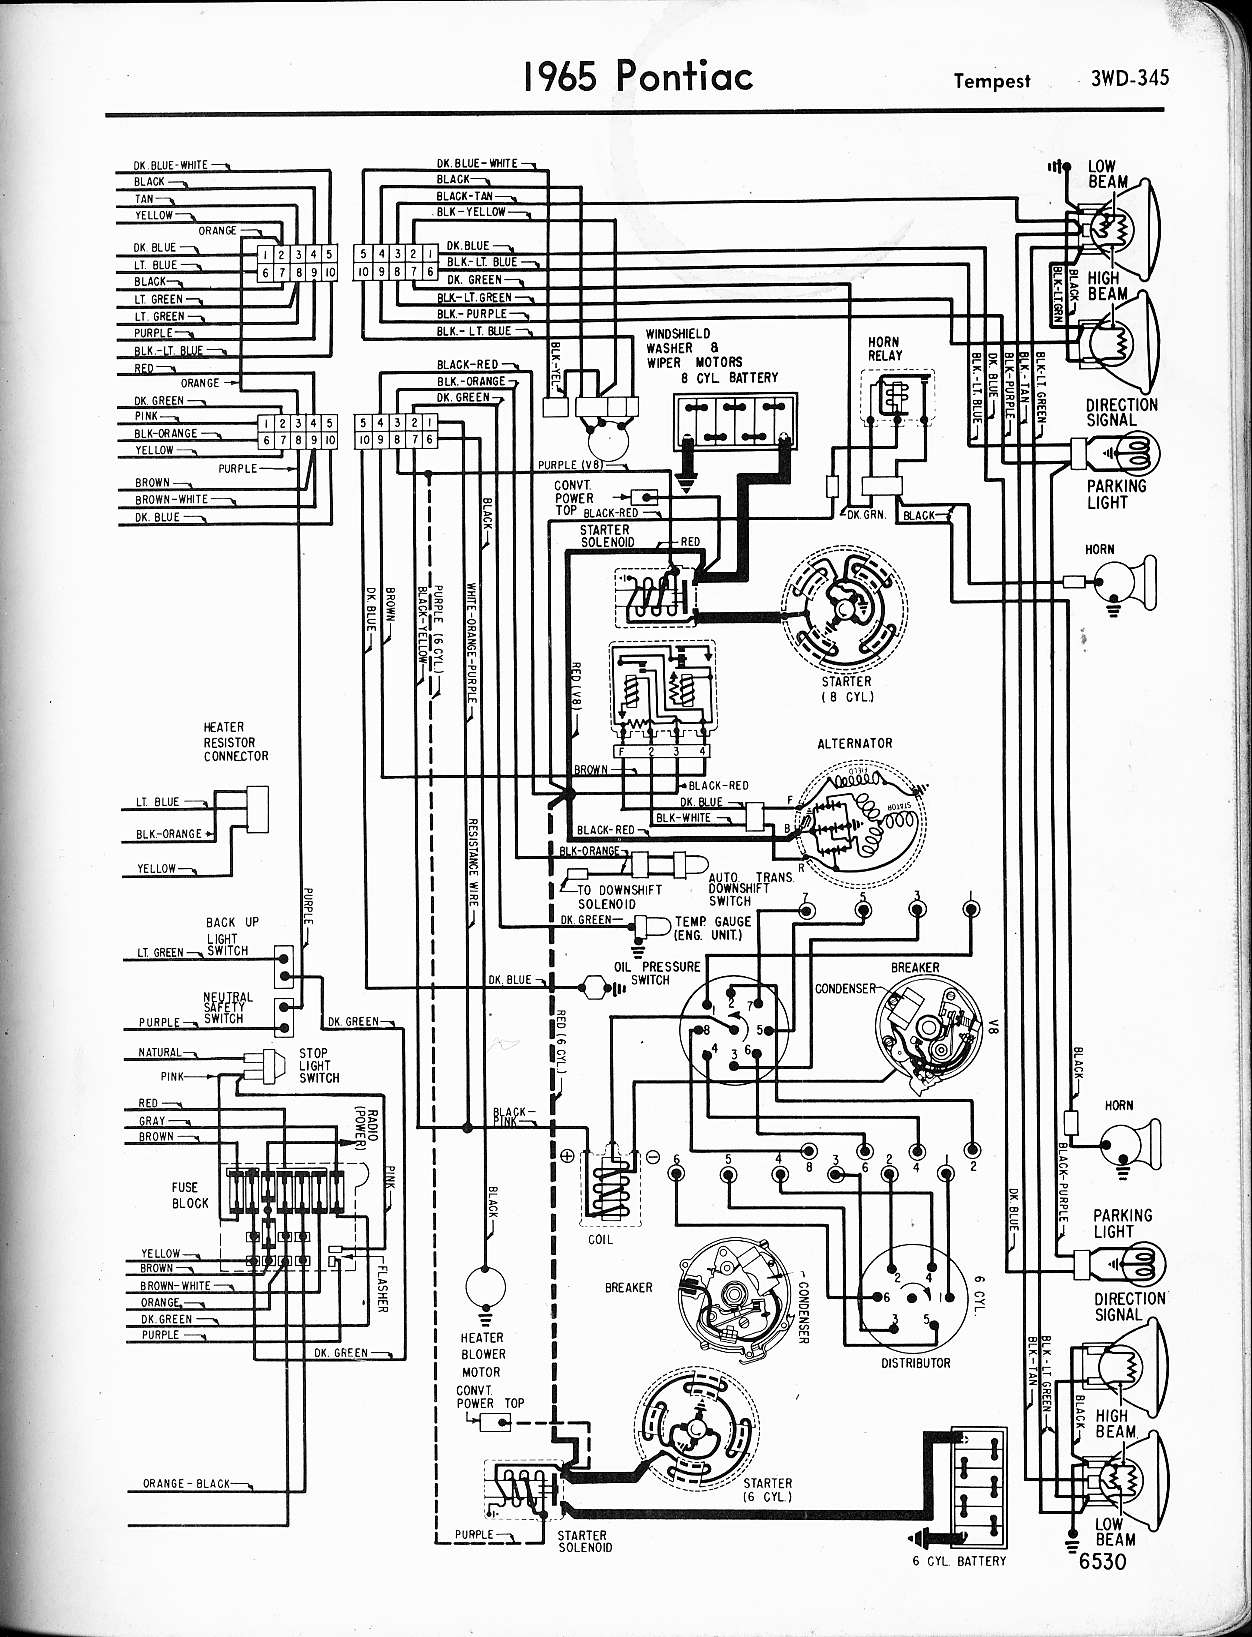 MWire5765 345 wallace racing wiring diagrams pontiac gto wiring diagram at gsmx.co